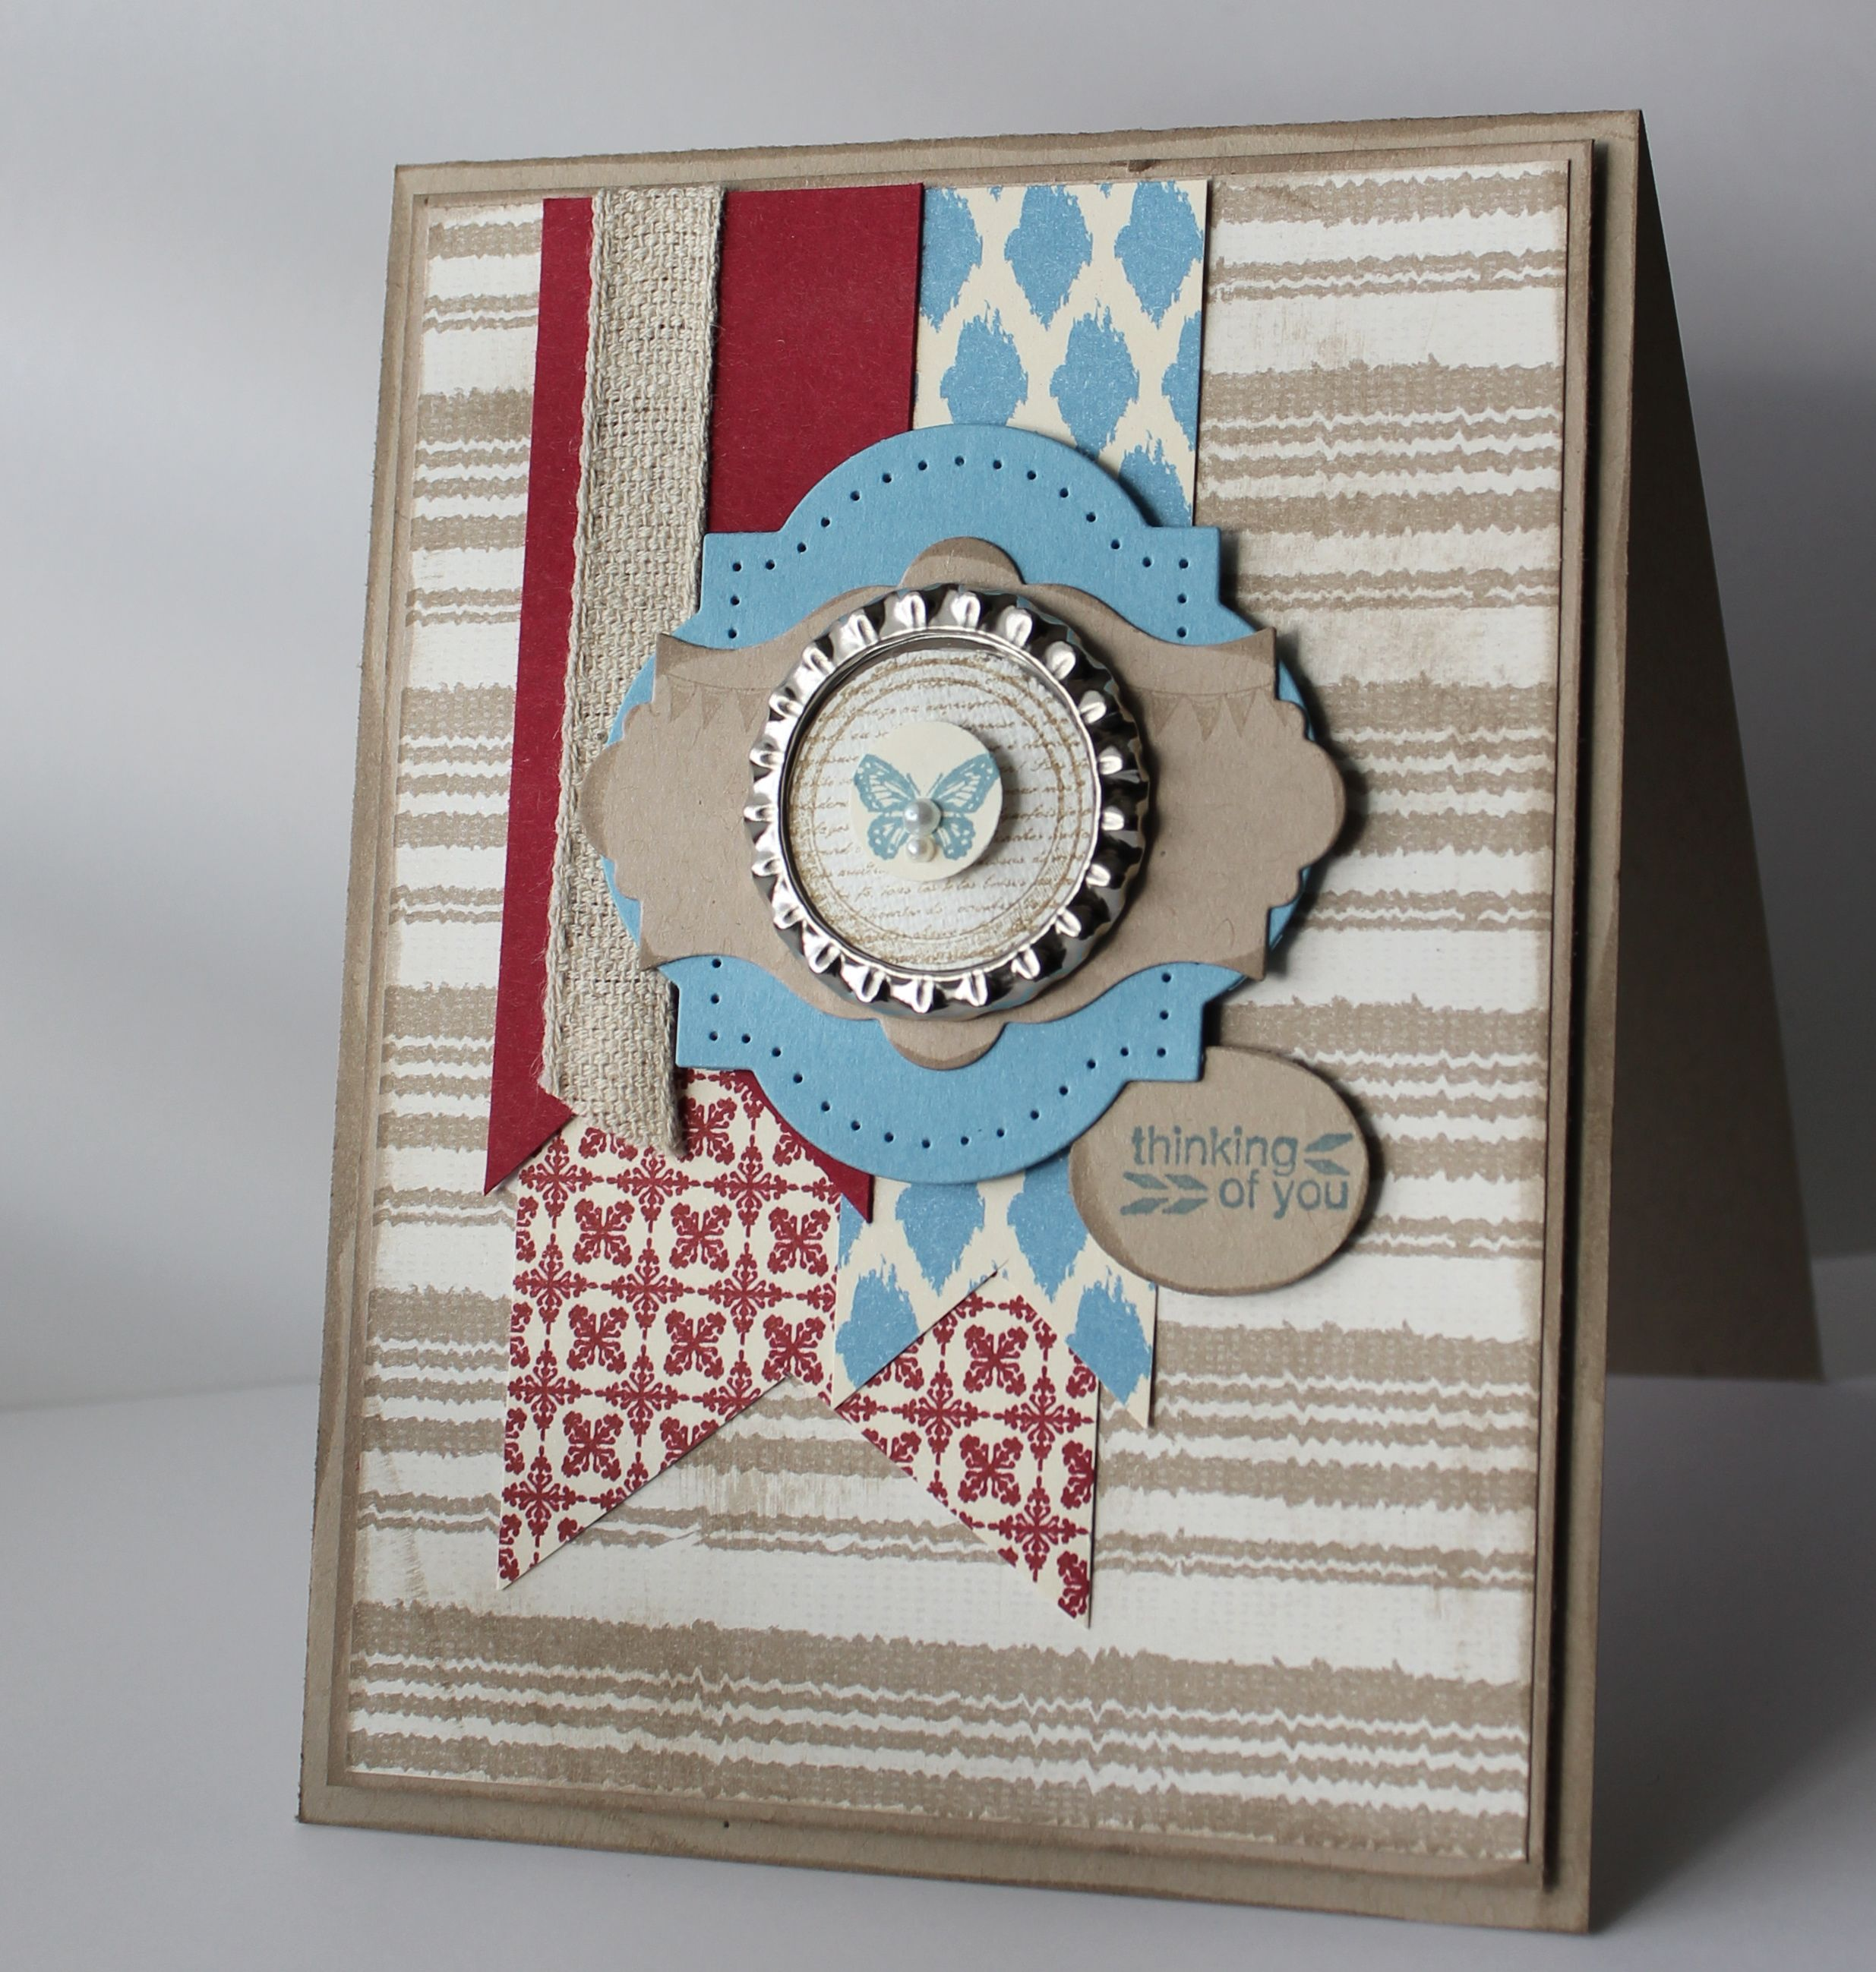 Soda Pop Top, Window Frame Framelits, Collage Curios set, Parker's Patterns DSP.  Great-looking card!